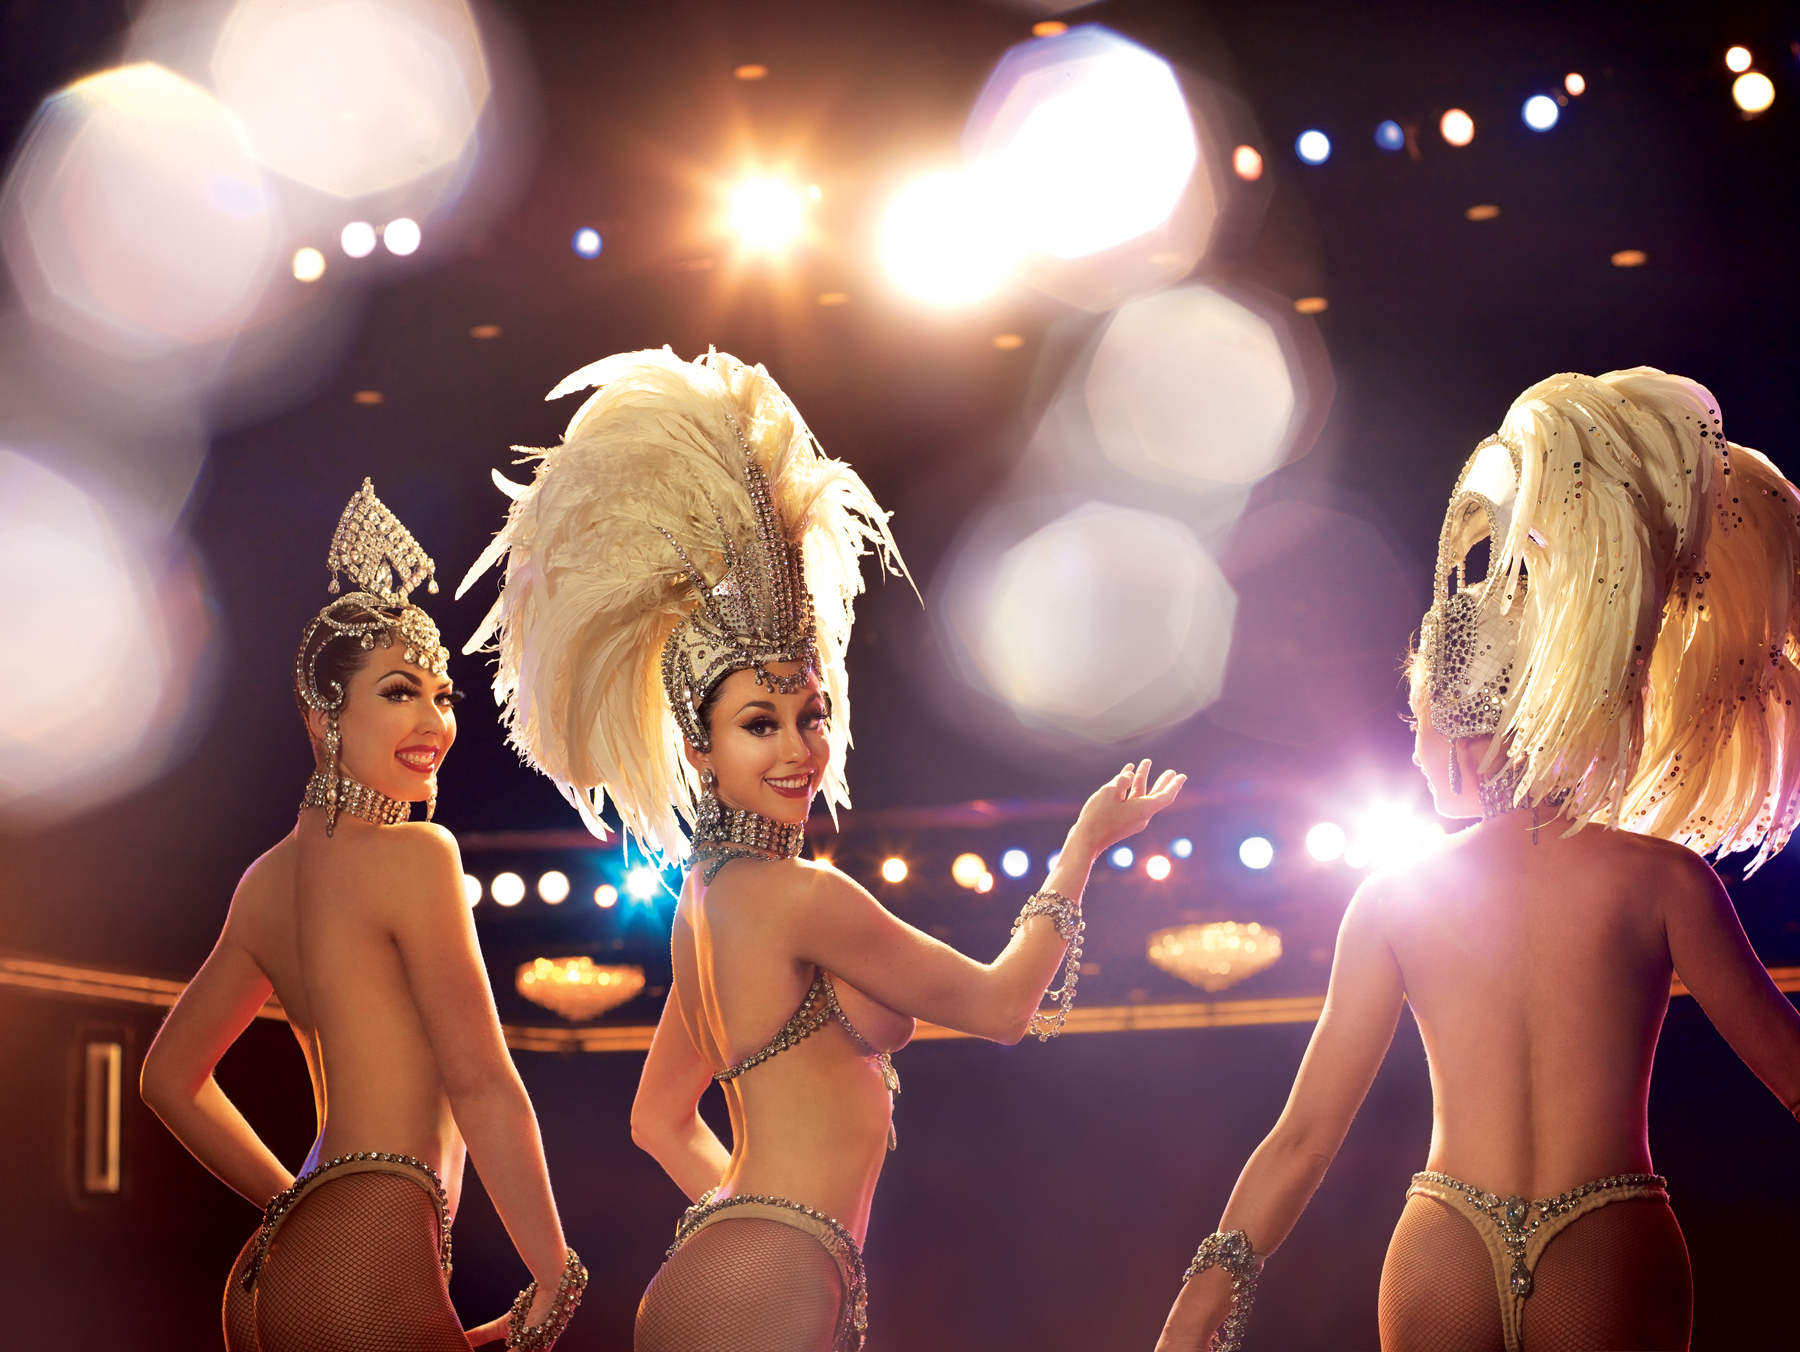 Jubilee_3ShowgirlsLights-blog.jpg (1800×1352)